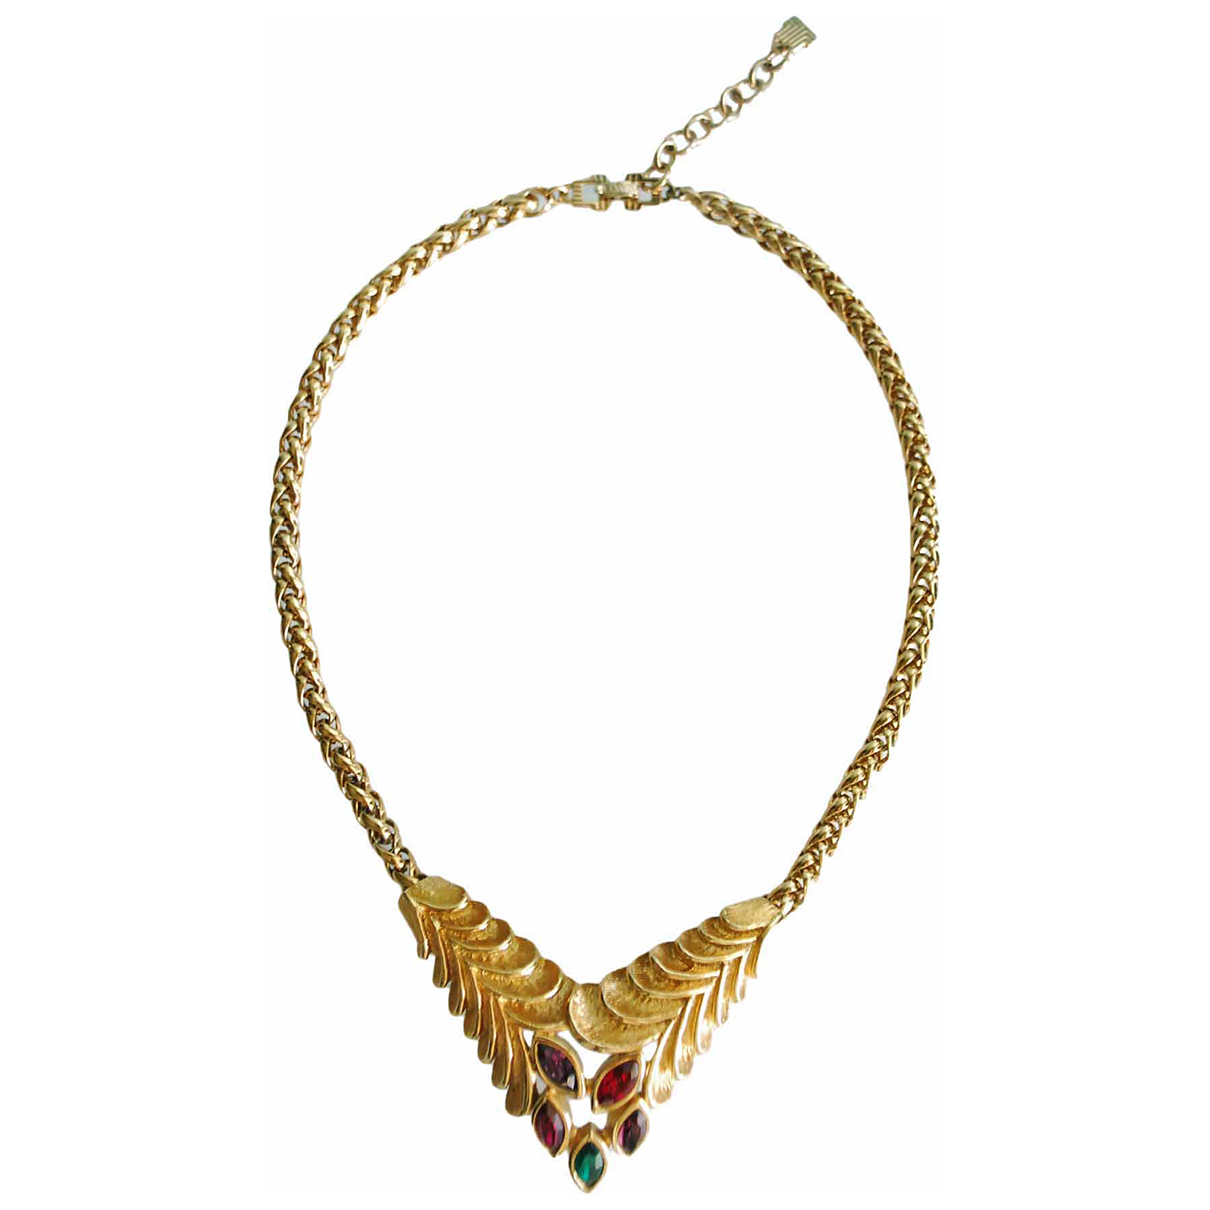 Lanvin \N Gold Metal necklace for Women \N